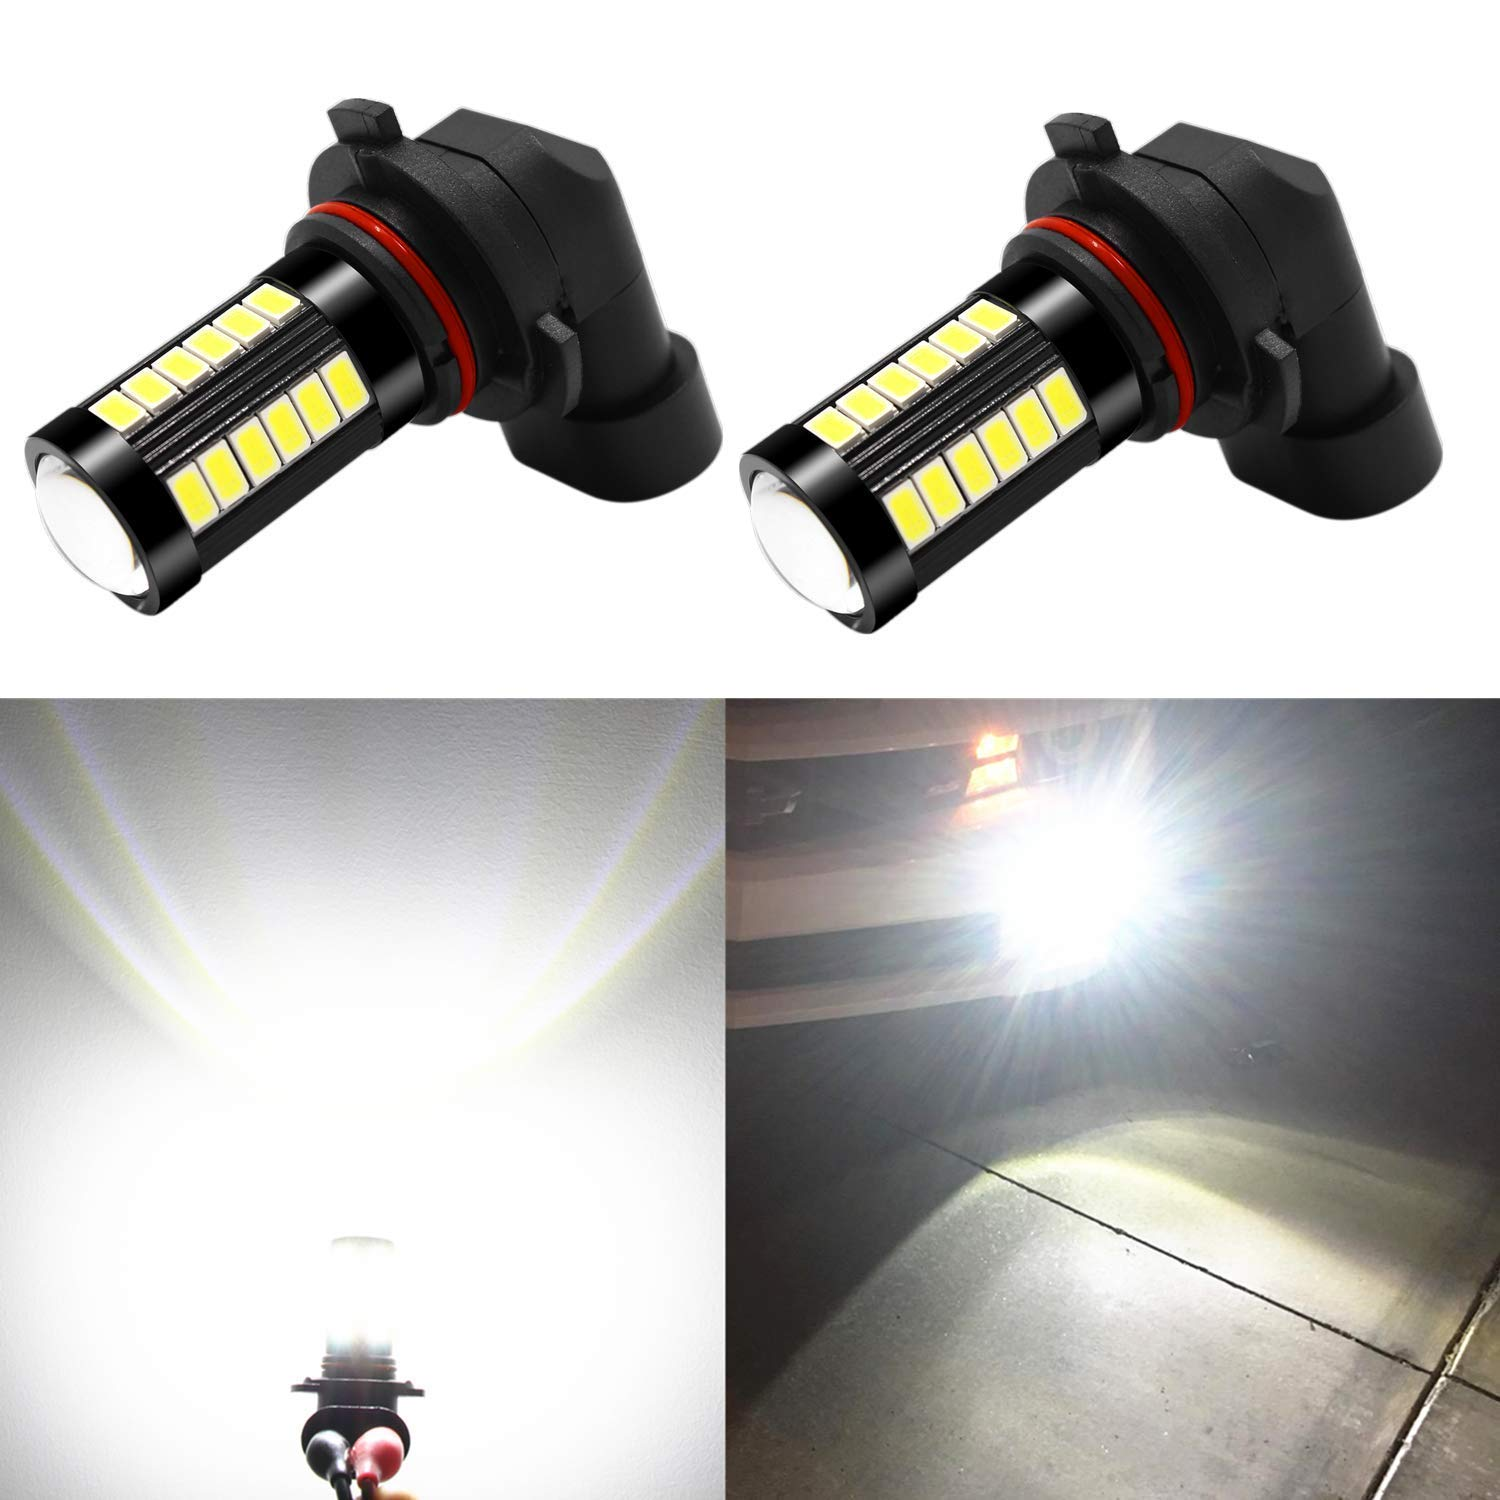 Alla Lighting 5202 LED Fog Light Bulbs 2800lm Xtreme Super Bright 5202 LED Bulb 5730 33-SMD 12V LED 5202 Bulb PS19W 5201 5202 LED Fog Lights DRL - 6000K Xenon White